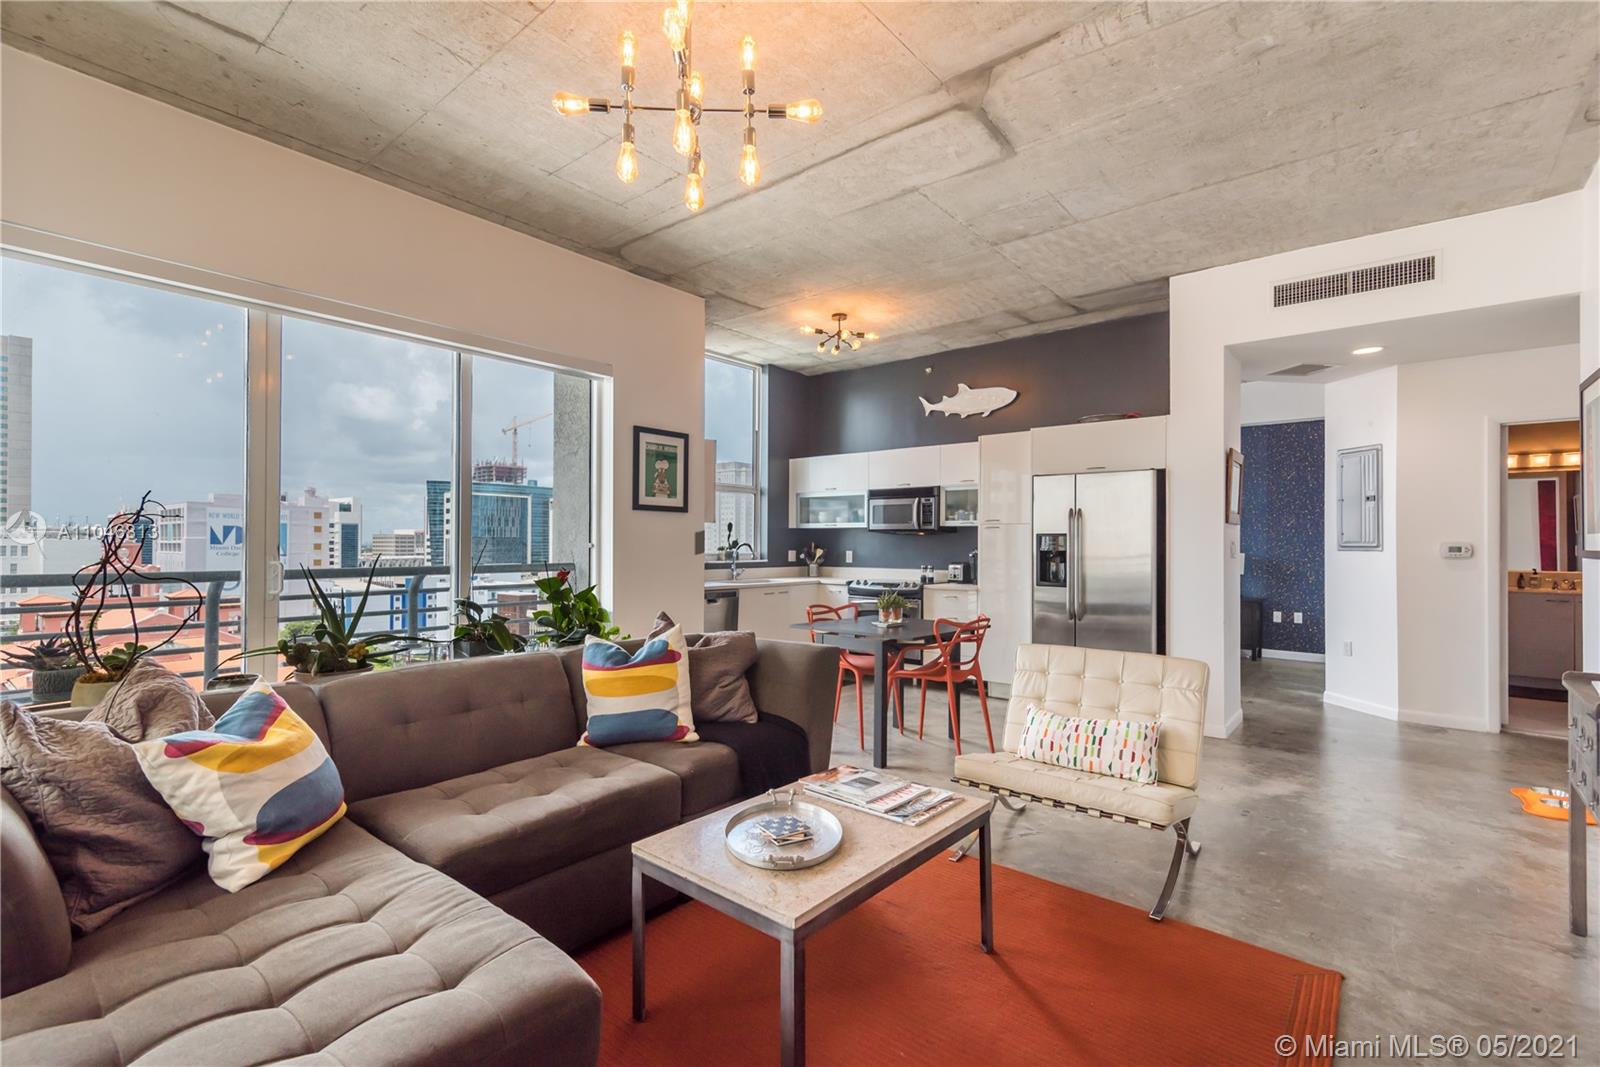 Bright west facing loft, 2 full baths, concrete floors and ceilings, lots of storage/closet space, in-unit washer/dryer, hurricane impact windows and a balcony. The 2nd bedroom is opened to the living room, currently used as a home office, but can be converted to an enclosed bedroom. The building features full time security and maintenance, doorman, roof top pool and spa, top floor gym with great views, and a 2nd pool on ground floor. Great downtown location, right next to the metro mover station. 1 parking space is guaranteed in the parking garage across the street at $60/month paid directly to Miami Parking Authority. For this unit, 2 Pets are allowed up to 30lbs each. Pictures were taking with previous tenant's furniture.